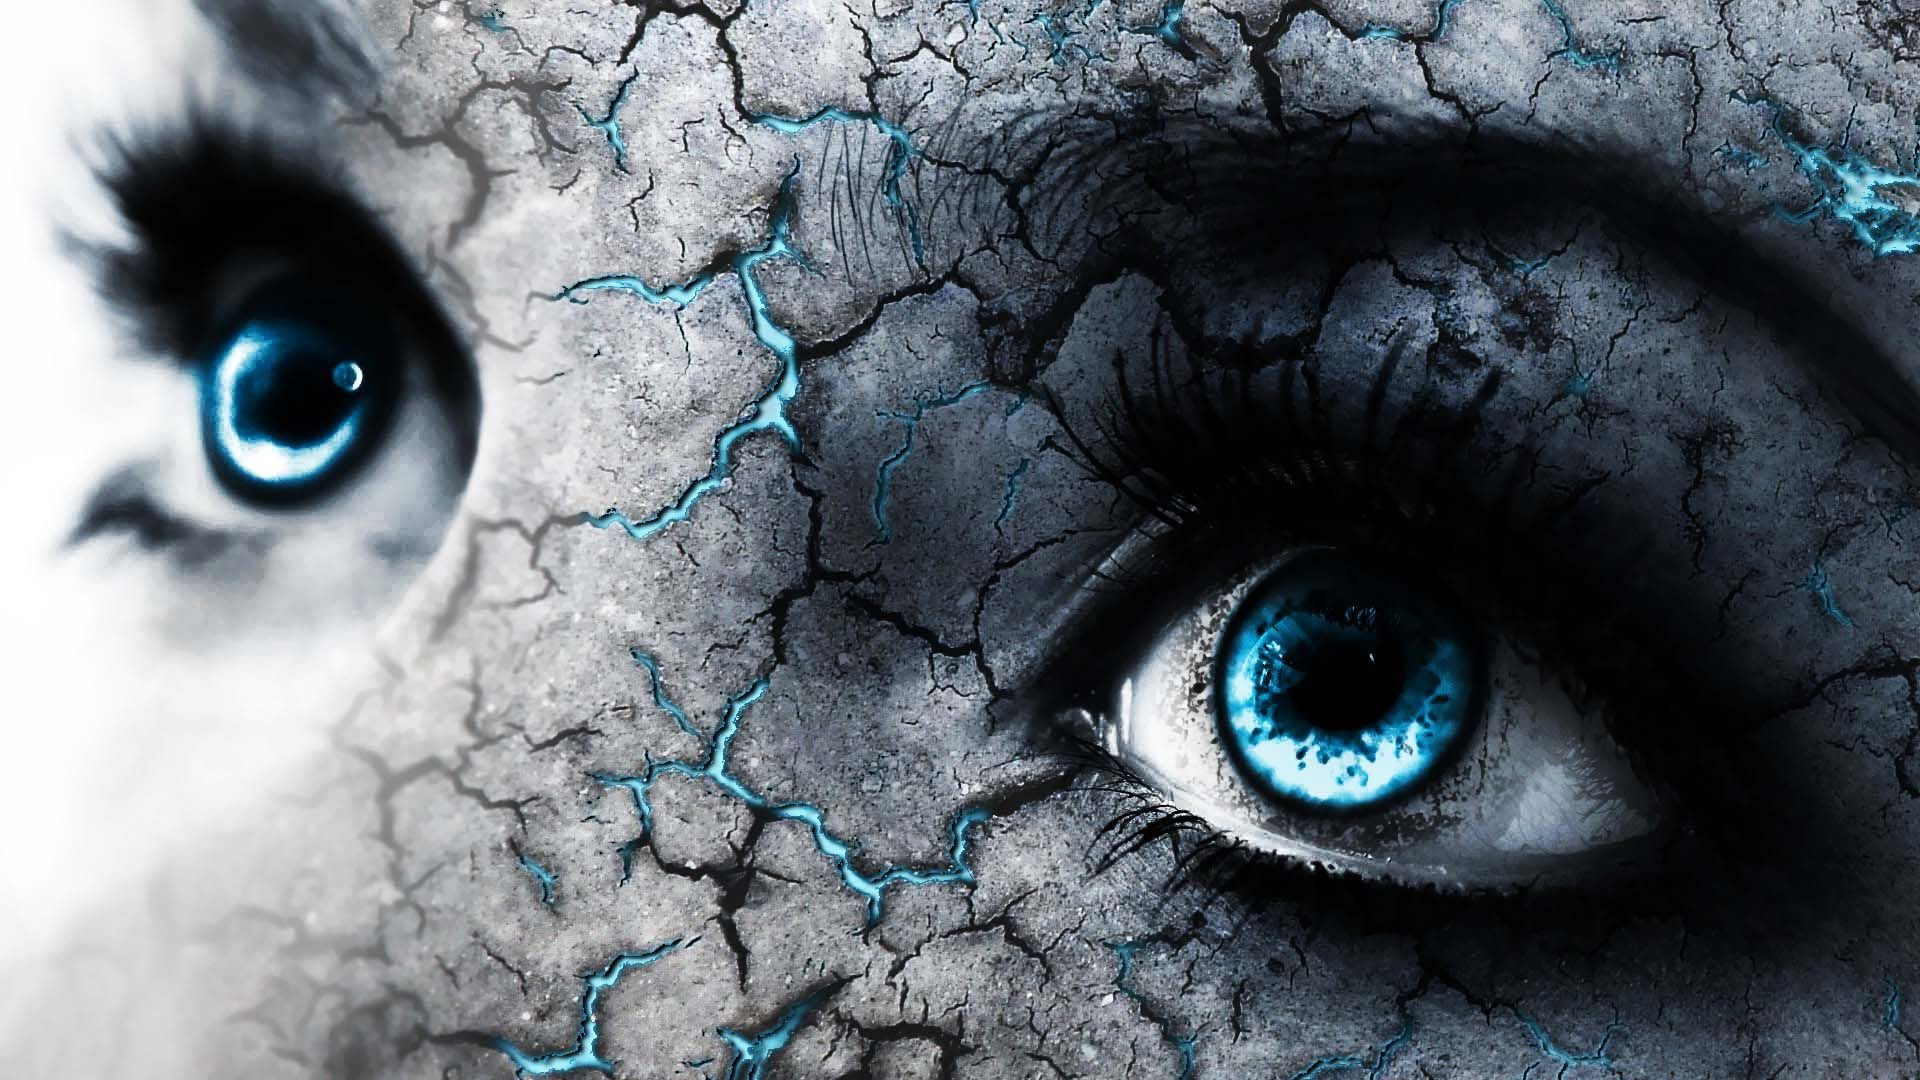 Blue Eyes And Cracked Skin 4k wide ultra hd wallpaper   HD 1920x1080